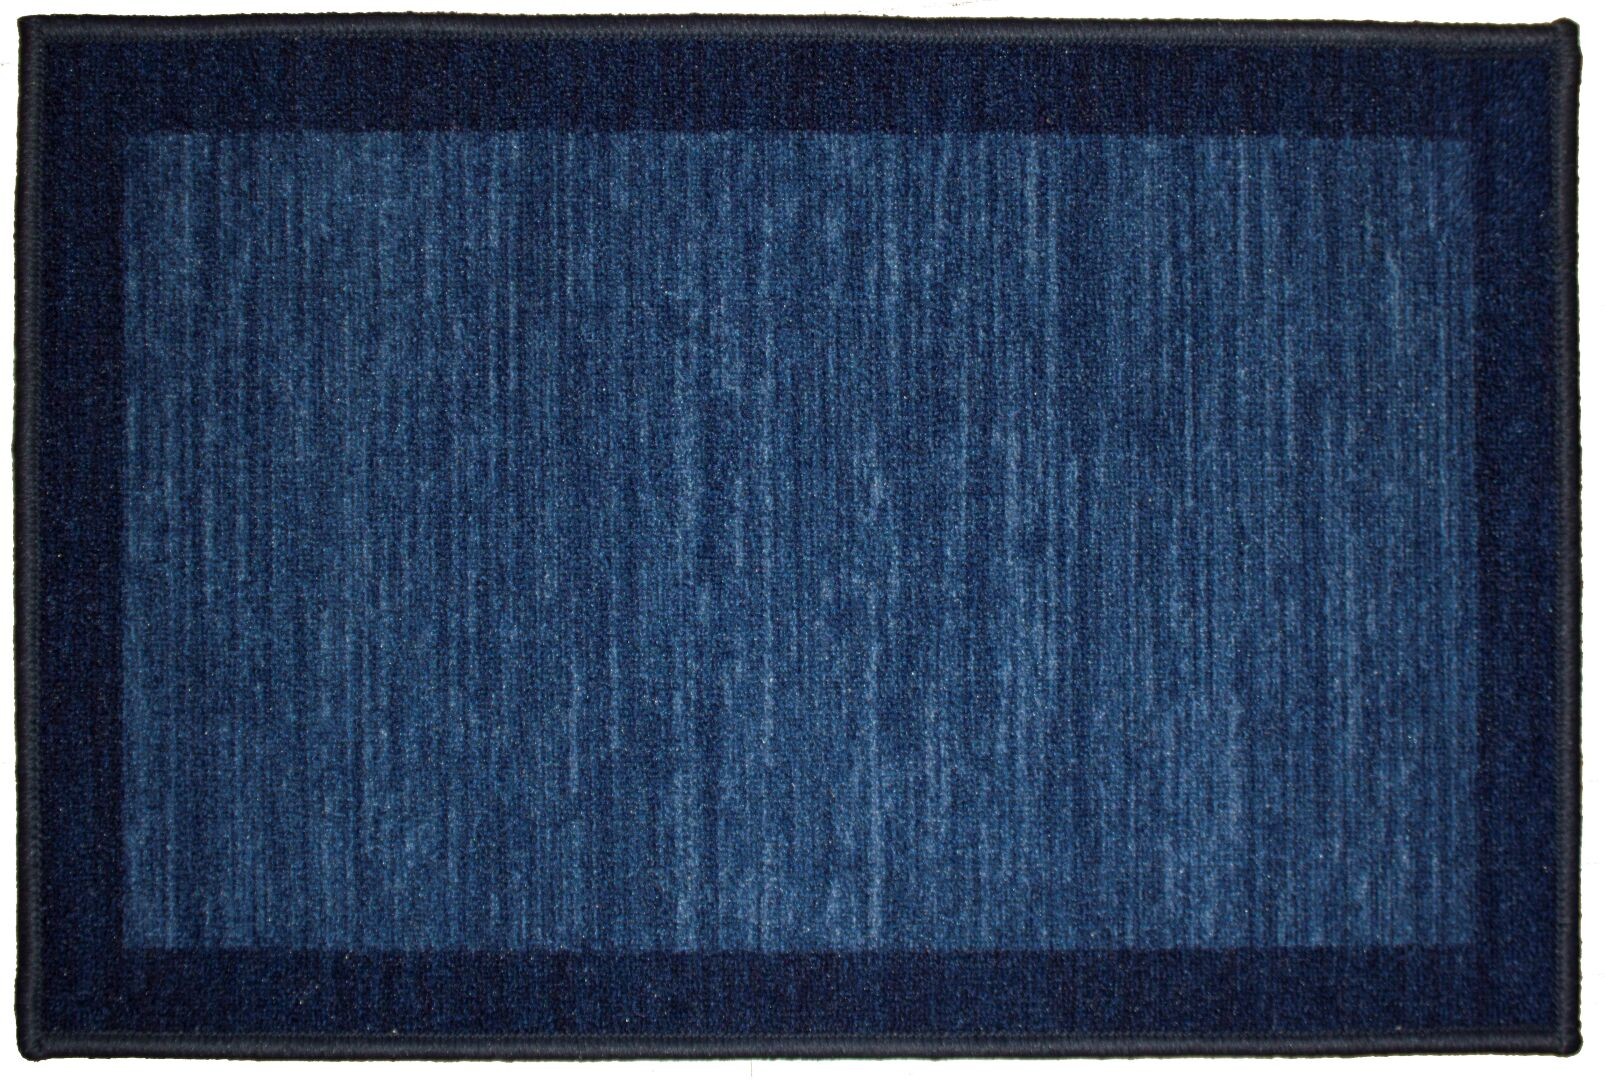 Sonoma Navy Area Rug Rug Size: 1'8